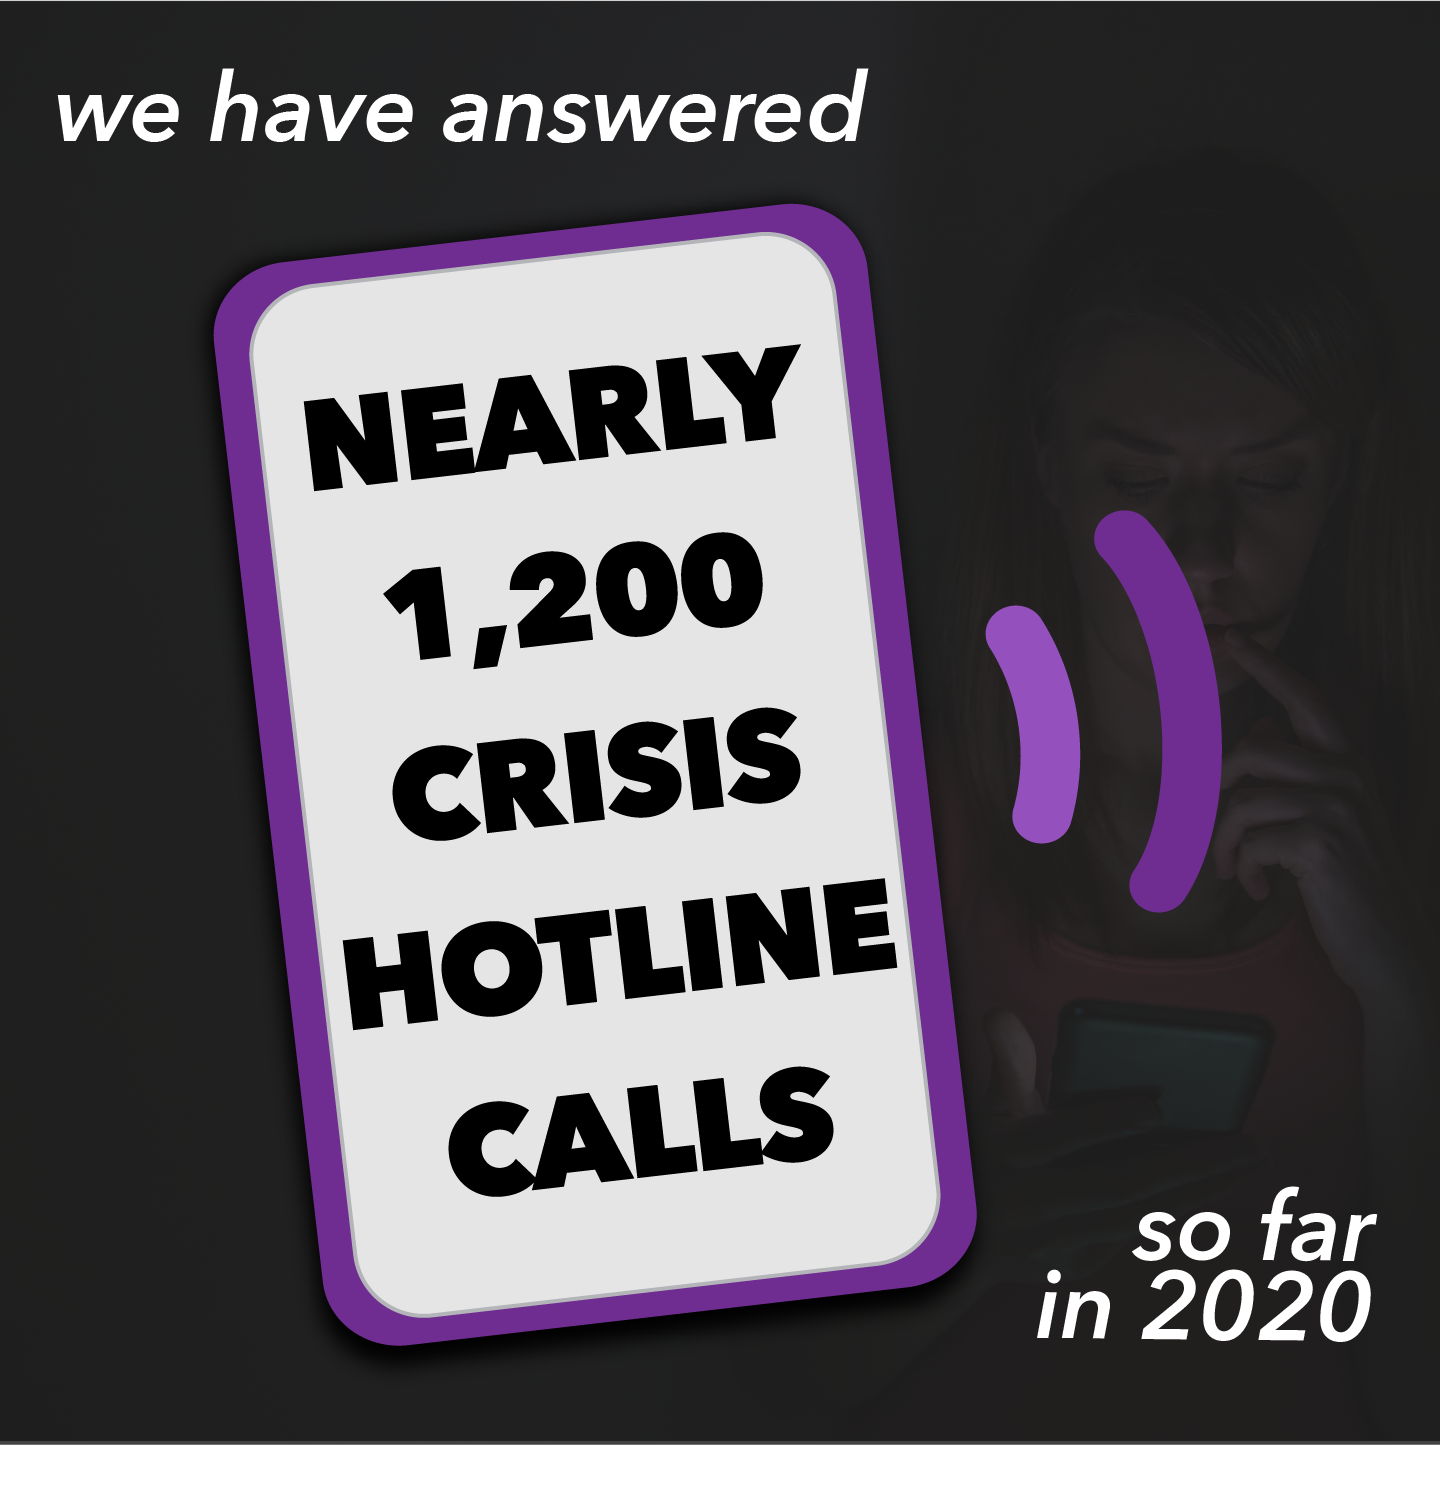 we have answered nearly 1200 crisis hotline calls so far in 2020